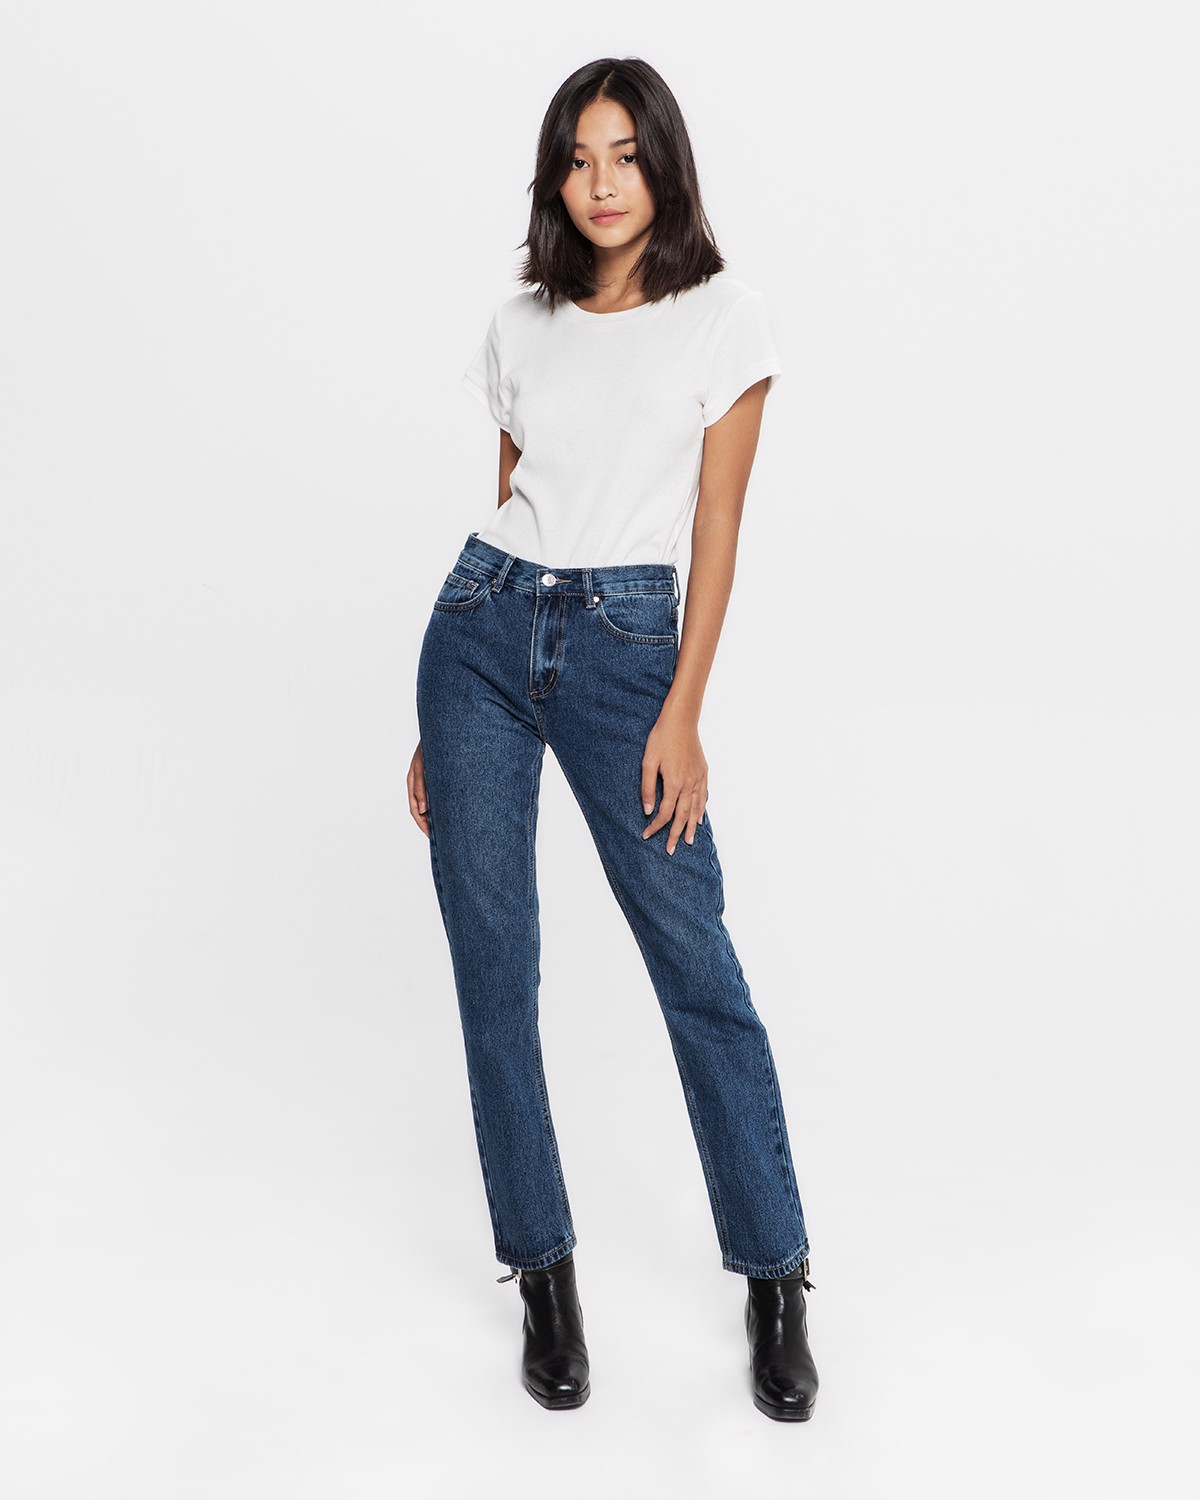 THE ON WAY JEANS - MEDIUM WASH